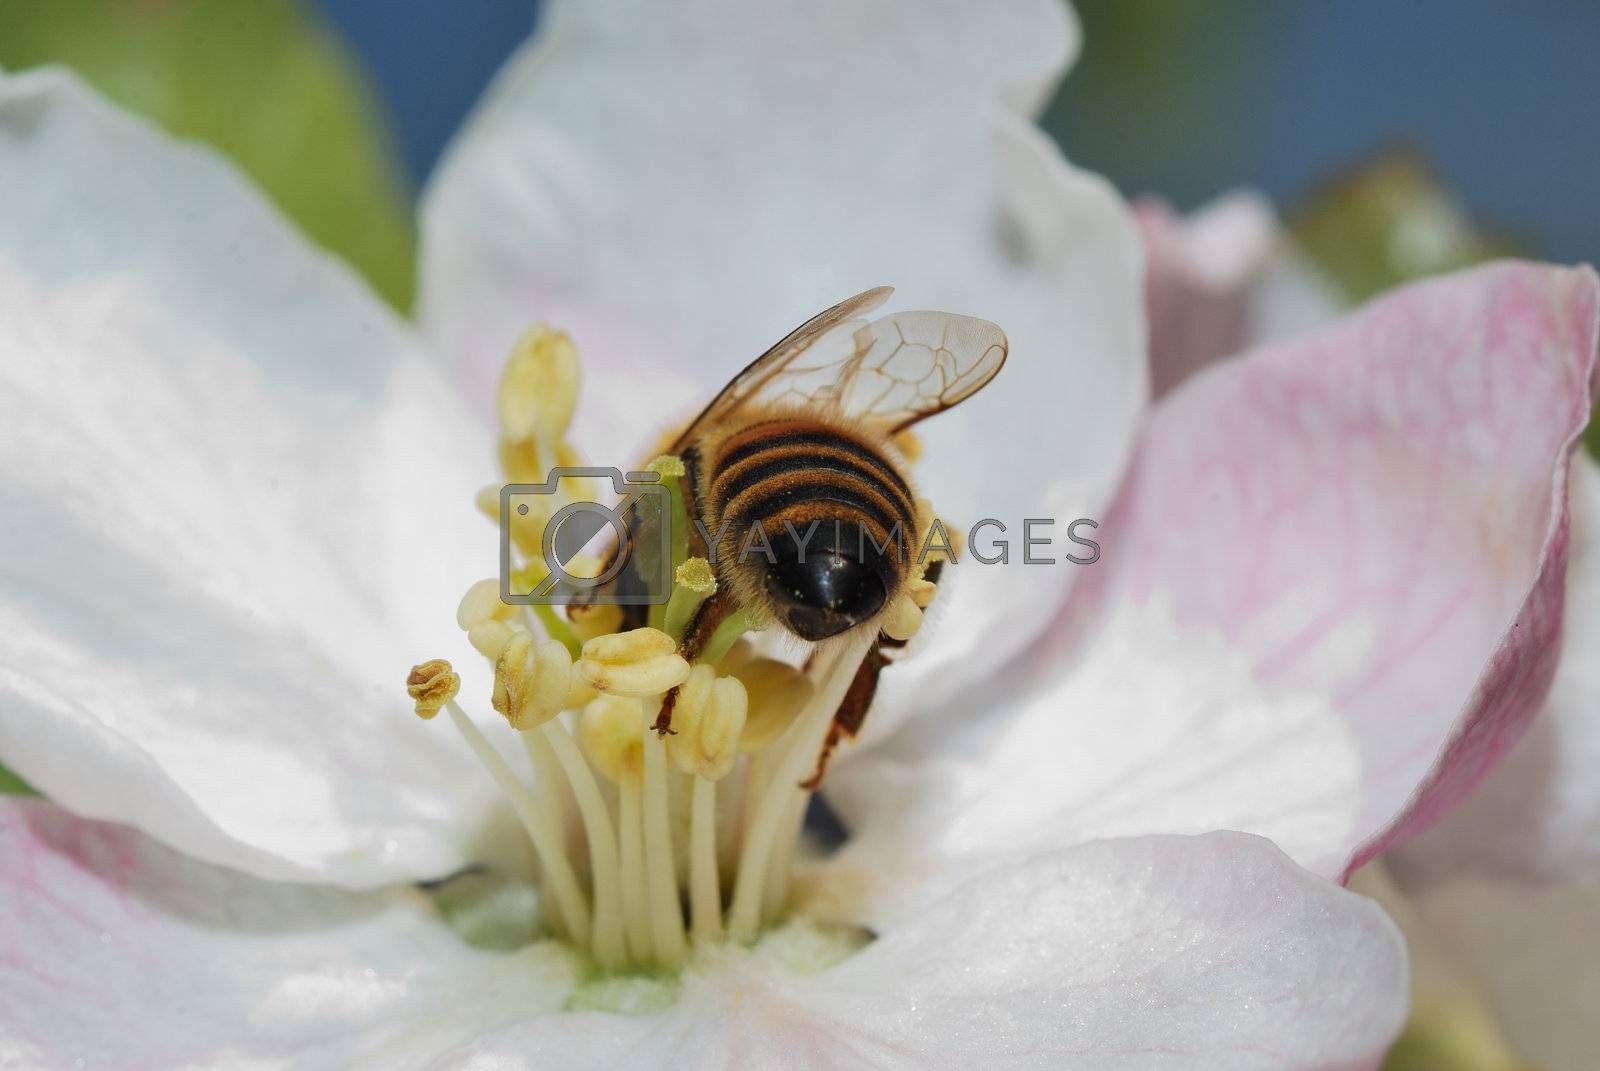 small bee crawls deep into a flower from the rear view